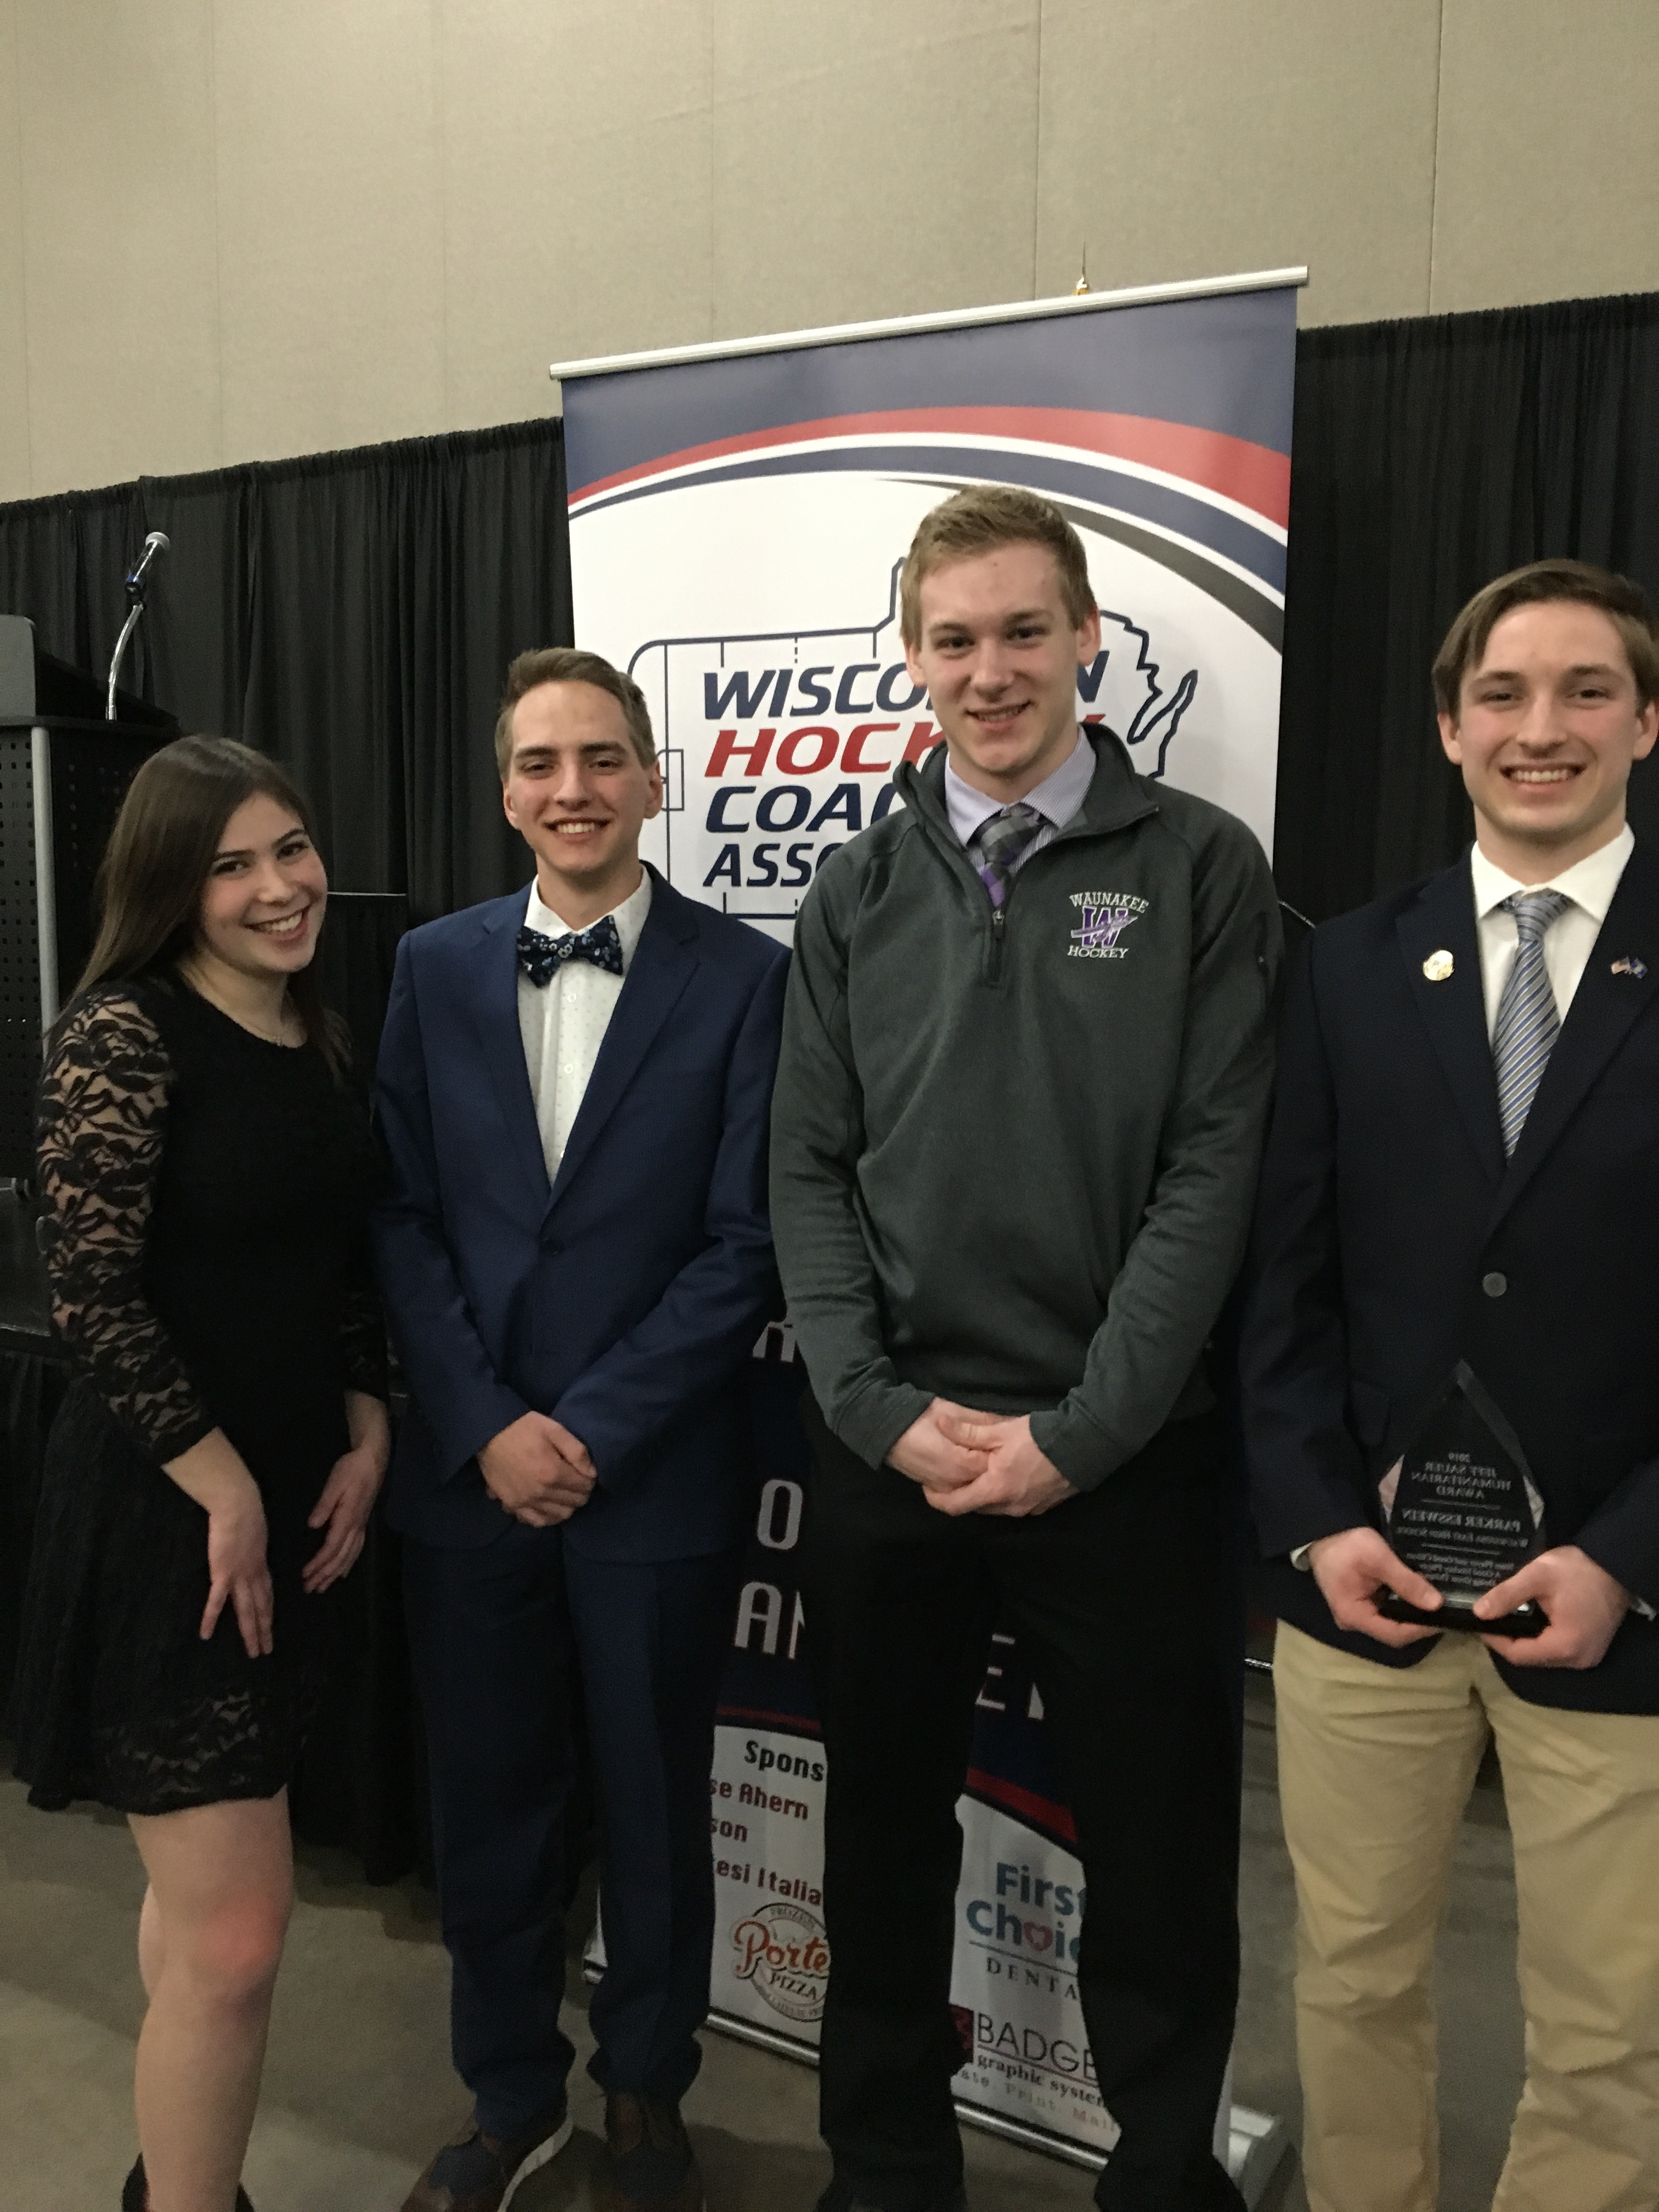 2019 Jeff Sauer Award finalists from left to right: Haley Meskin (Madison West HS/Metro Lynx), Luke Trittelwitz (Grantsburg HS/WSFLG Blizzard), Dane Luebke (Wanuakee HS), and our winner, Parker Esswein (Wauwatosa East HS/Brookfield Stars)